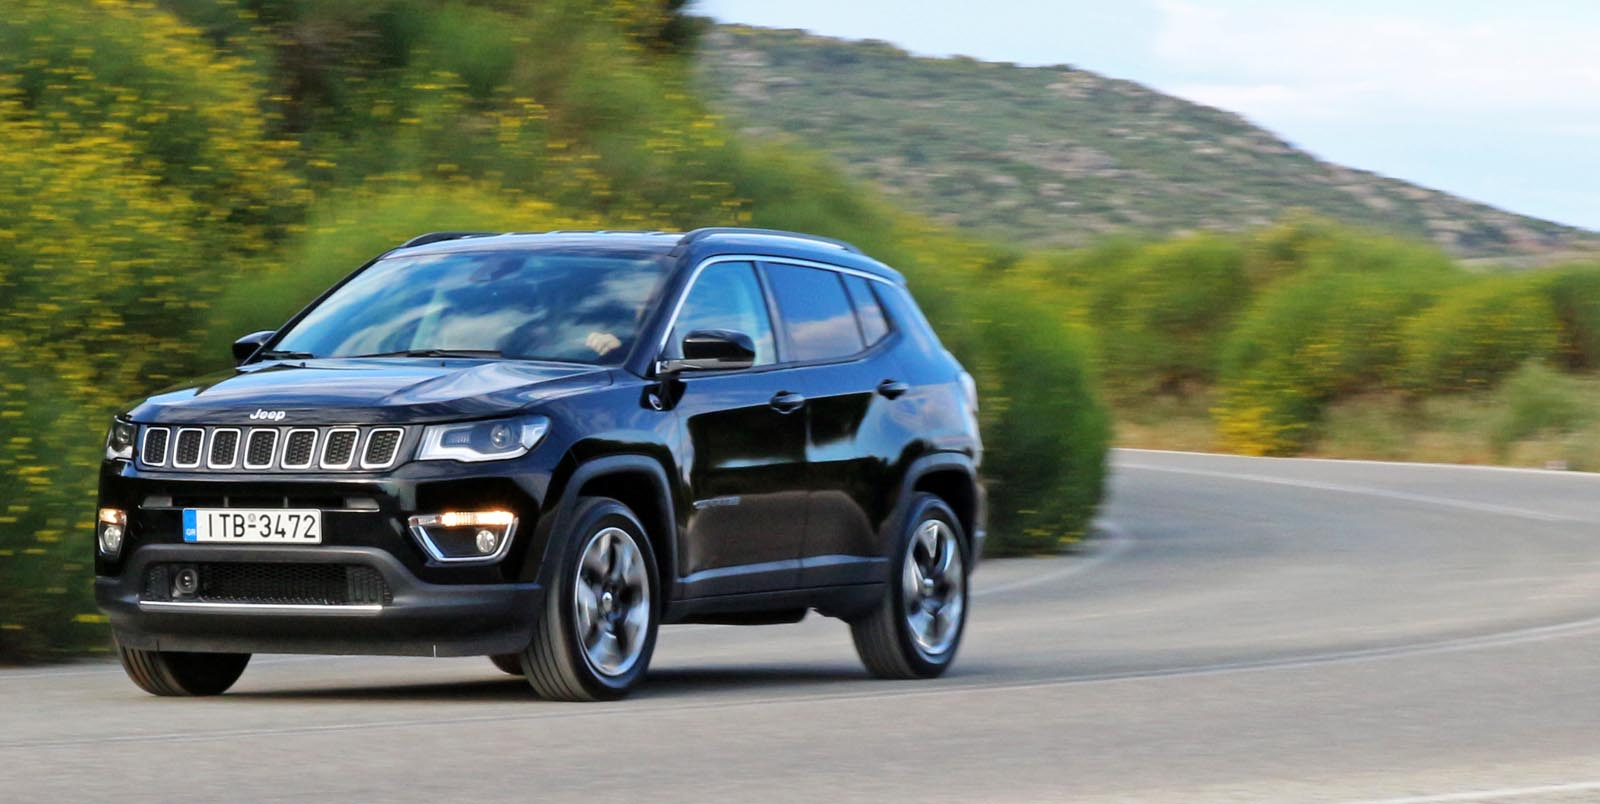 Photo of Jeep Compass 1.4T Auto 170 PS [test drive]